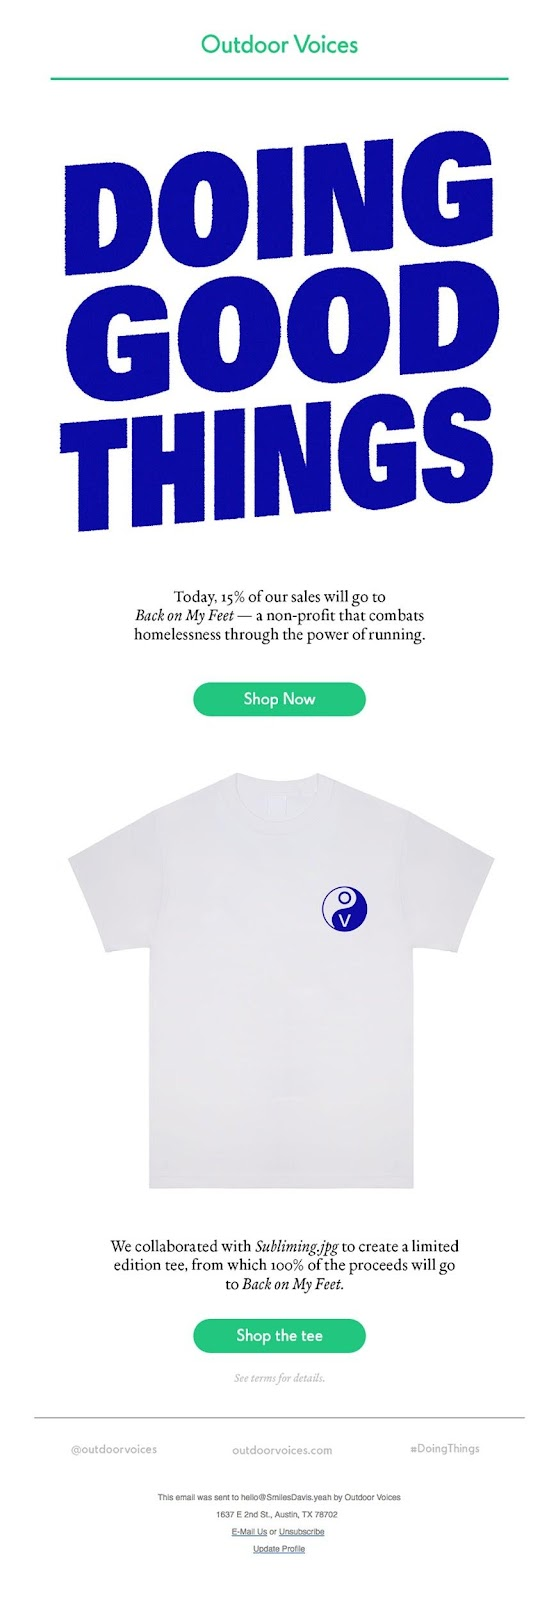 Outdoor Voices' limited edition tee and one-day sale